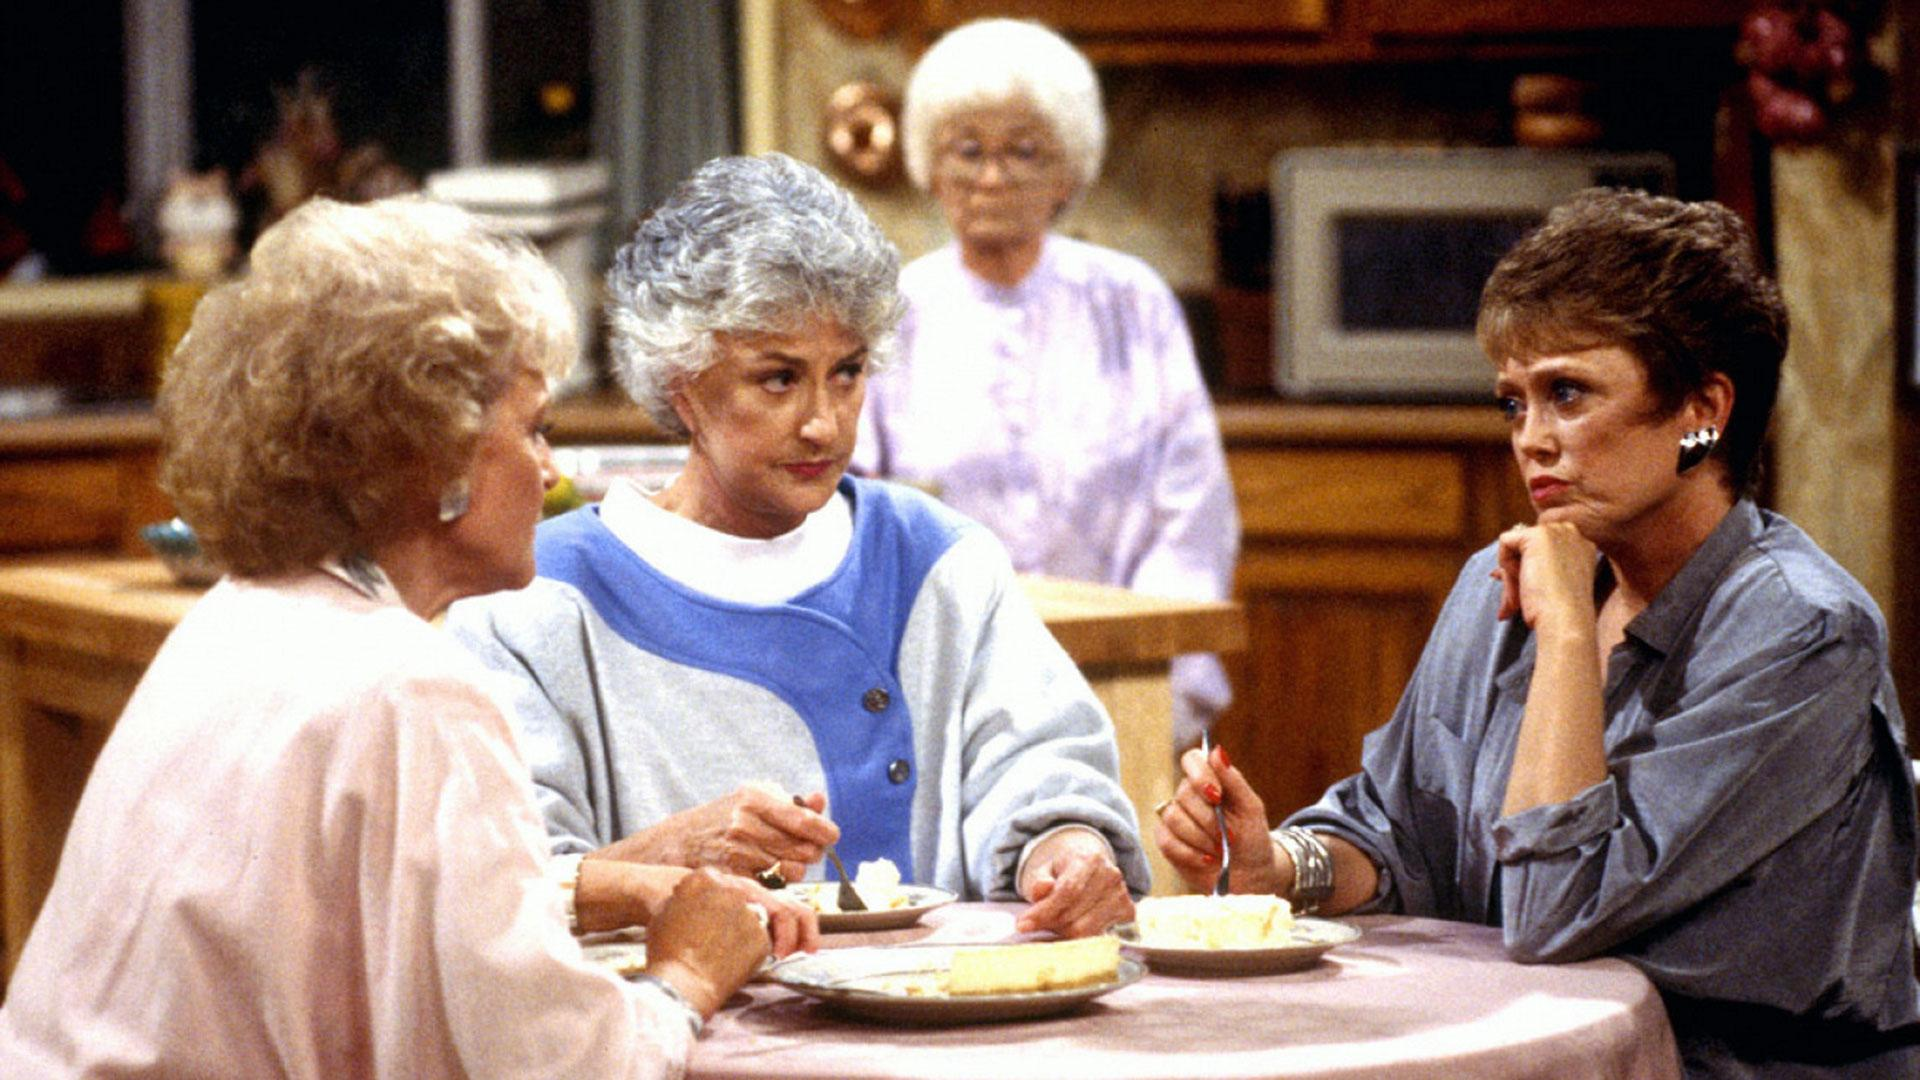 A Golden Girls Cookbook Is Coming in 2020, & Yes, There's a